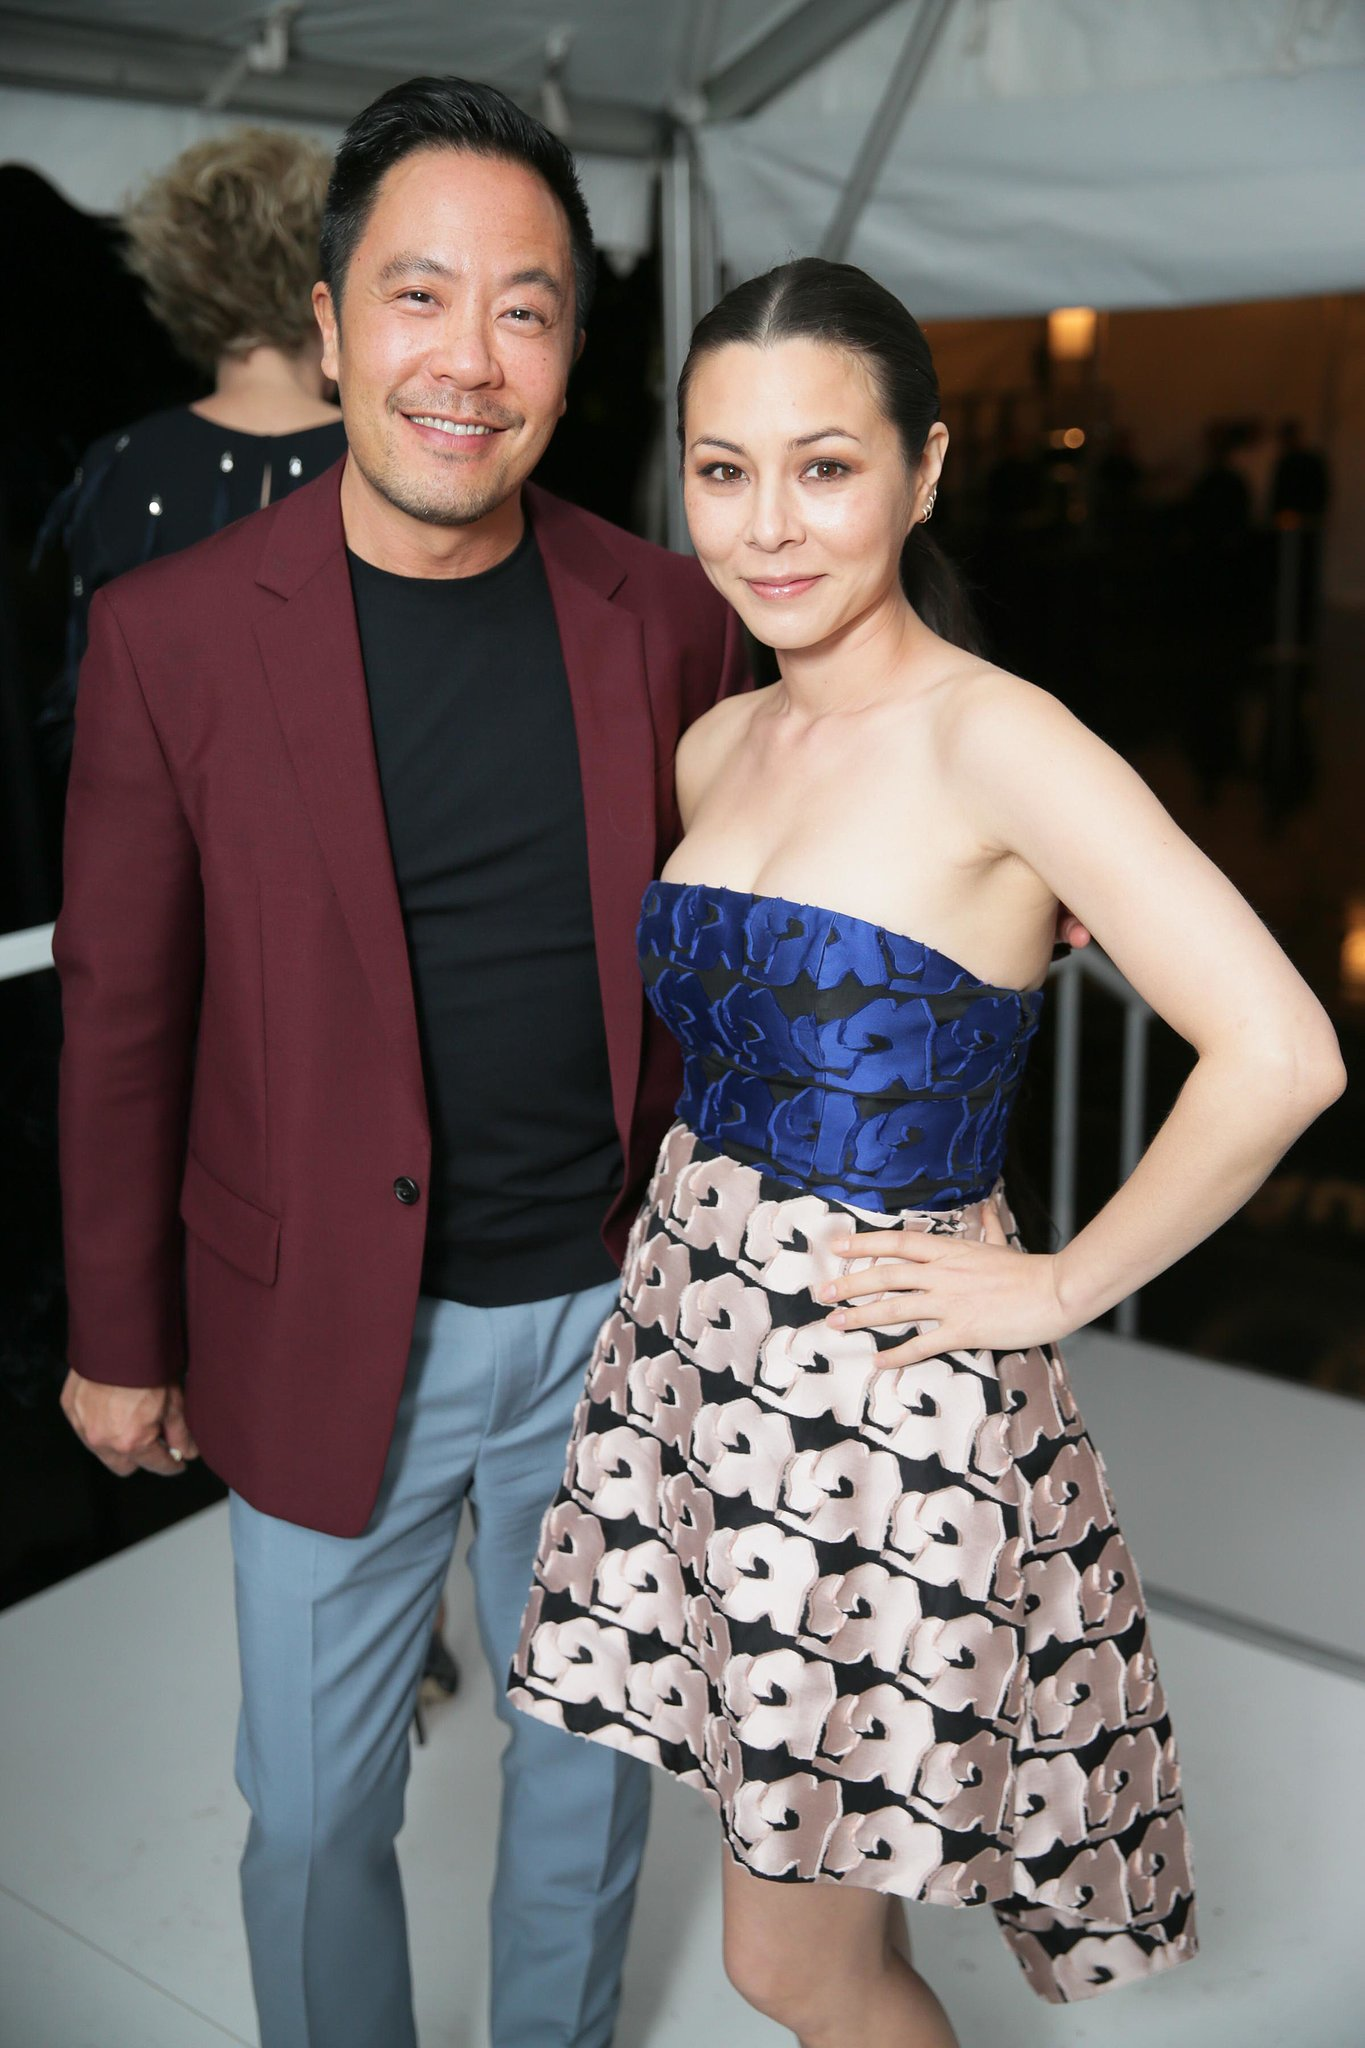 Derek Lam and China Chow paired up for a stylish shot at the Two x Two amfAR for AIDS and Art benefit.